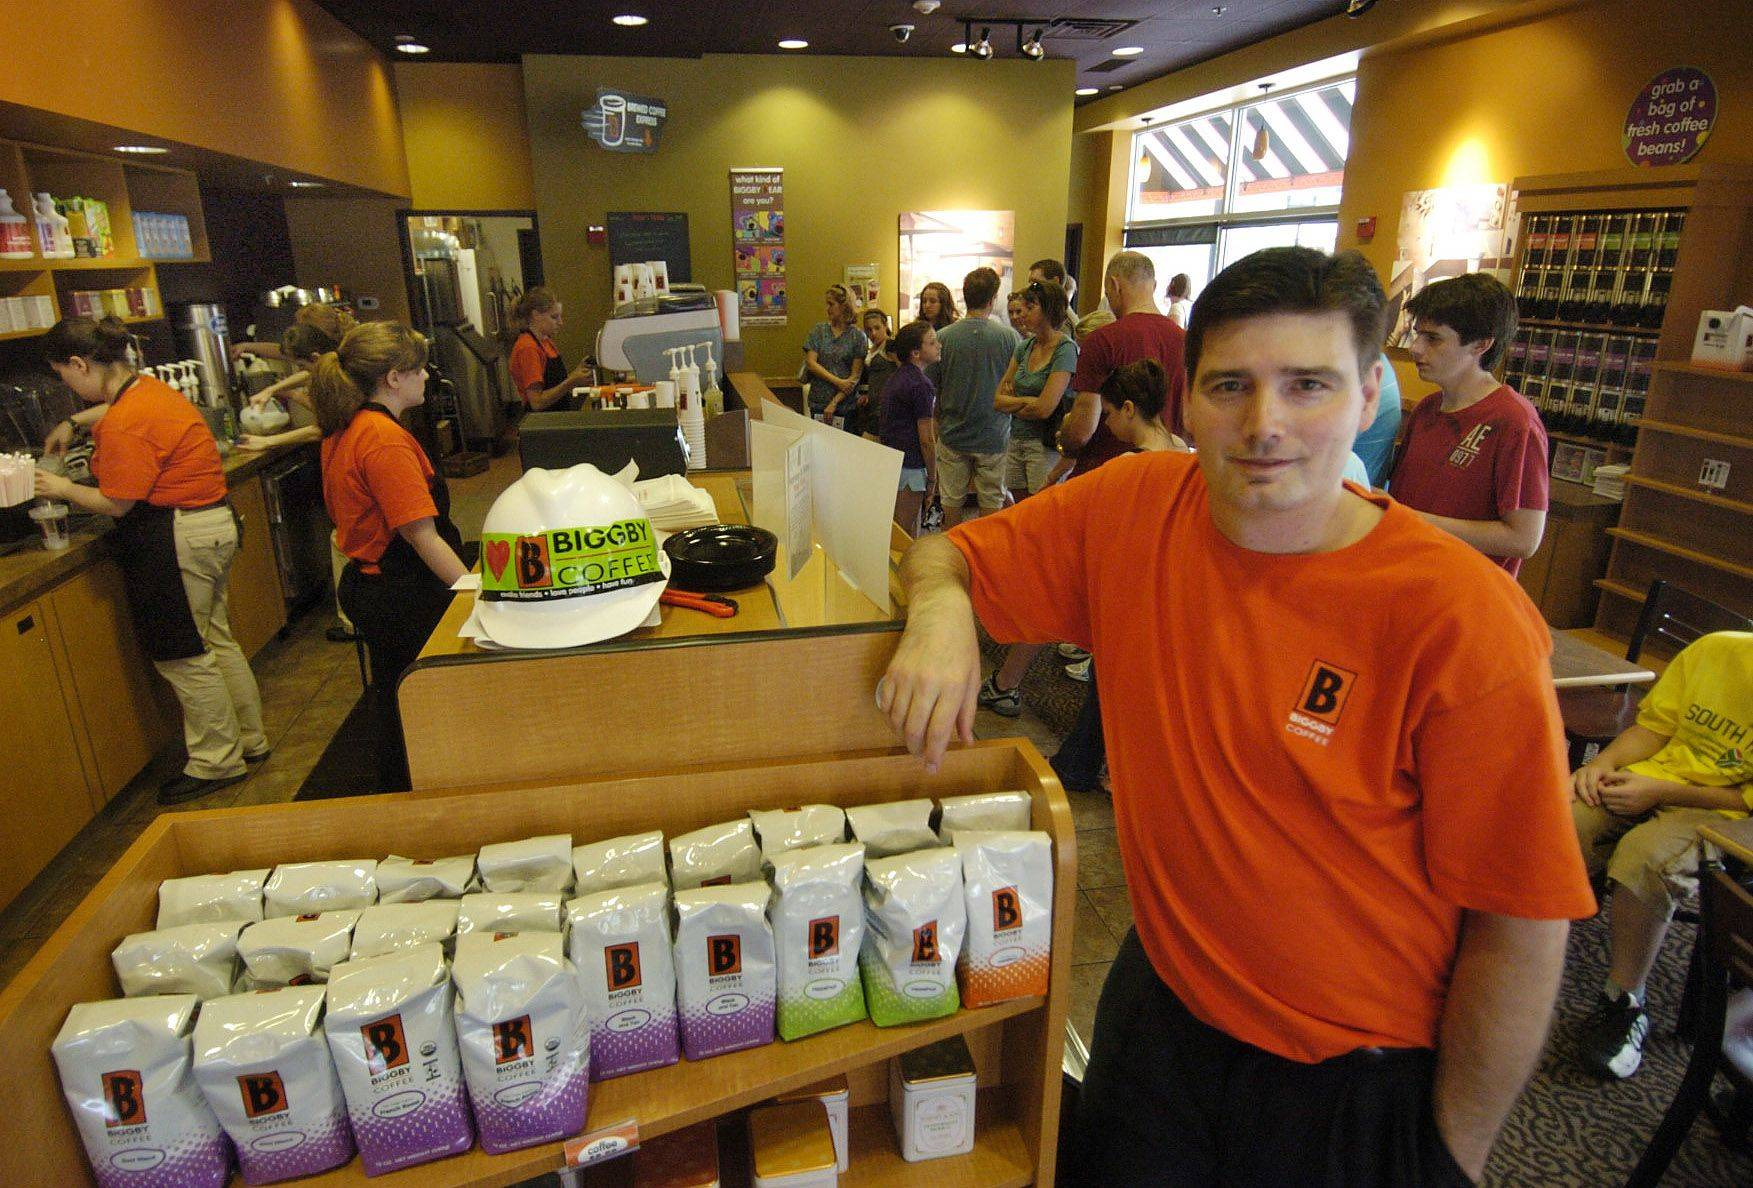 Tim Mickelson owns Biggby Coffee shop, one of the new businesses in Arlington Heights.